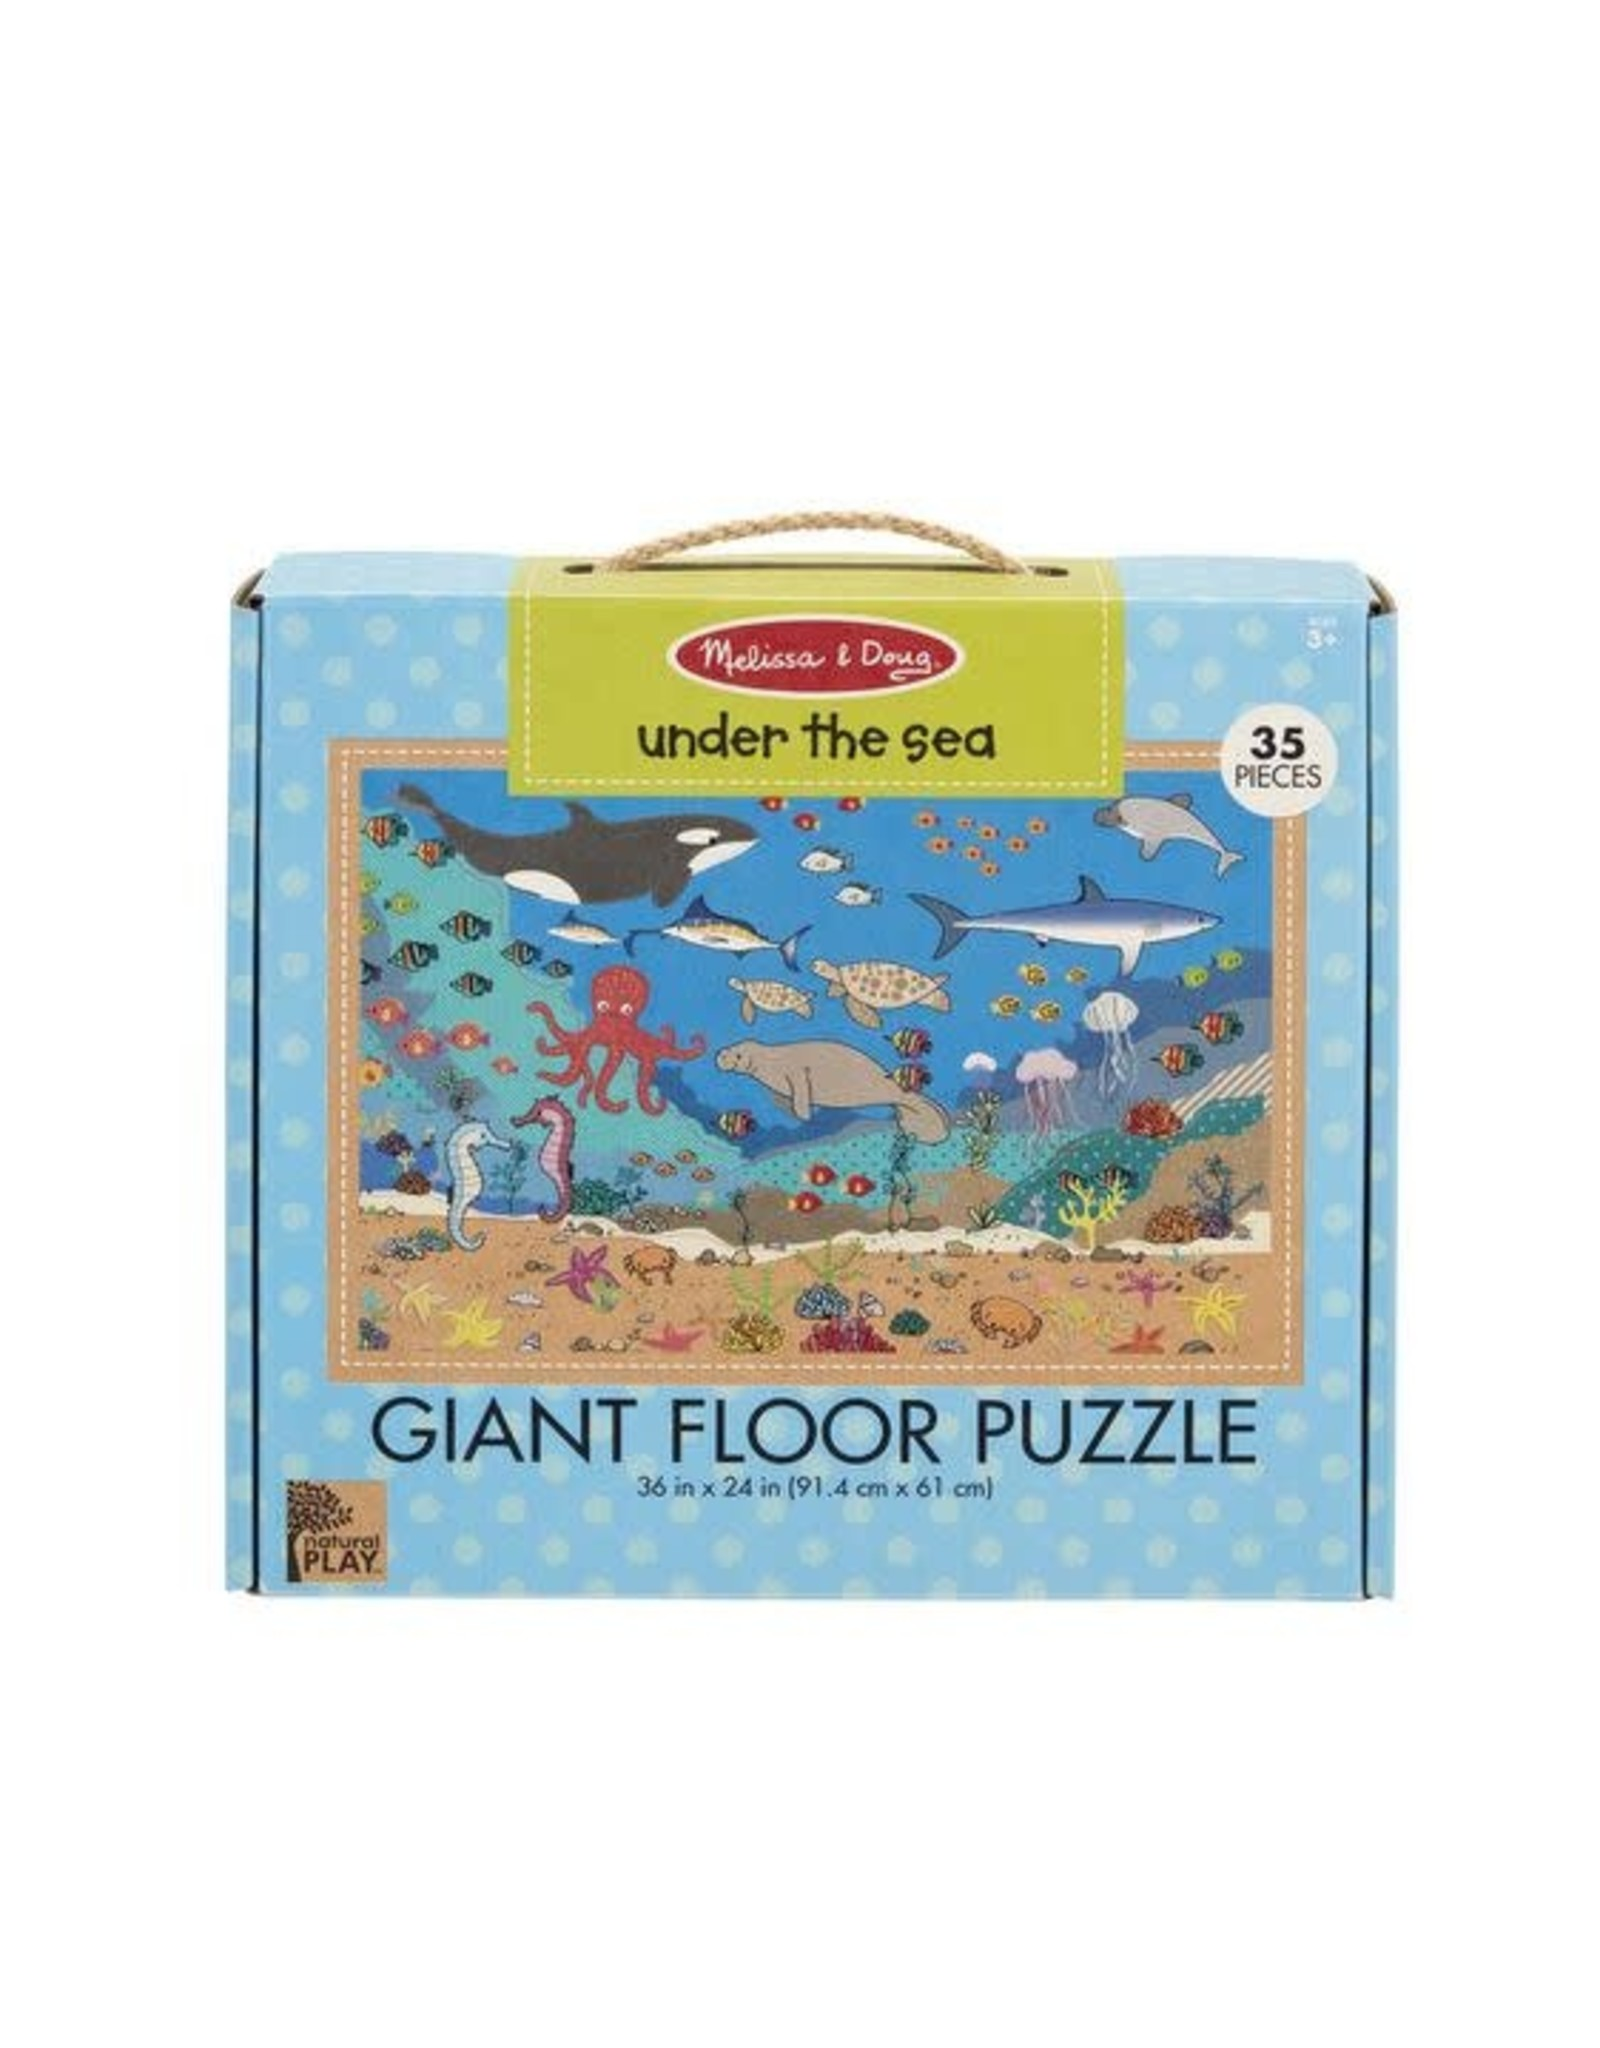 NP Giant Floor Puzzle - Under the Sea